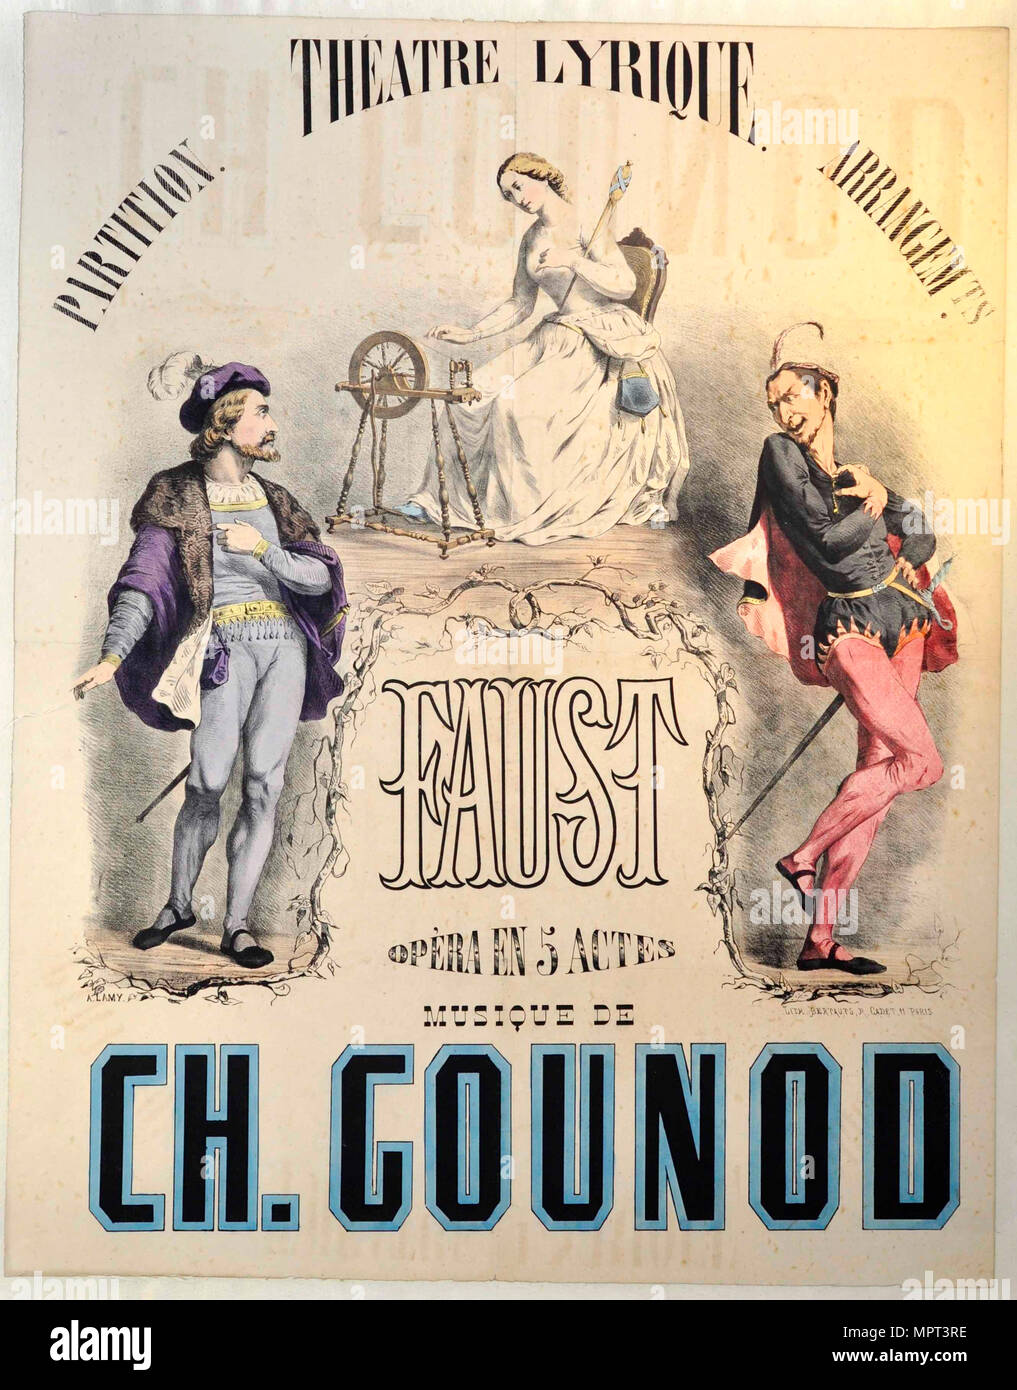 Premiere Poster for the opera Faust by Charles Gounod at the Théâtre Lyrique, March 19, 1859, 1859 - Stock Image